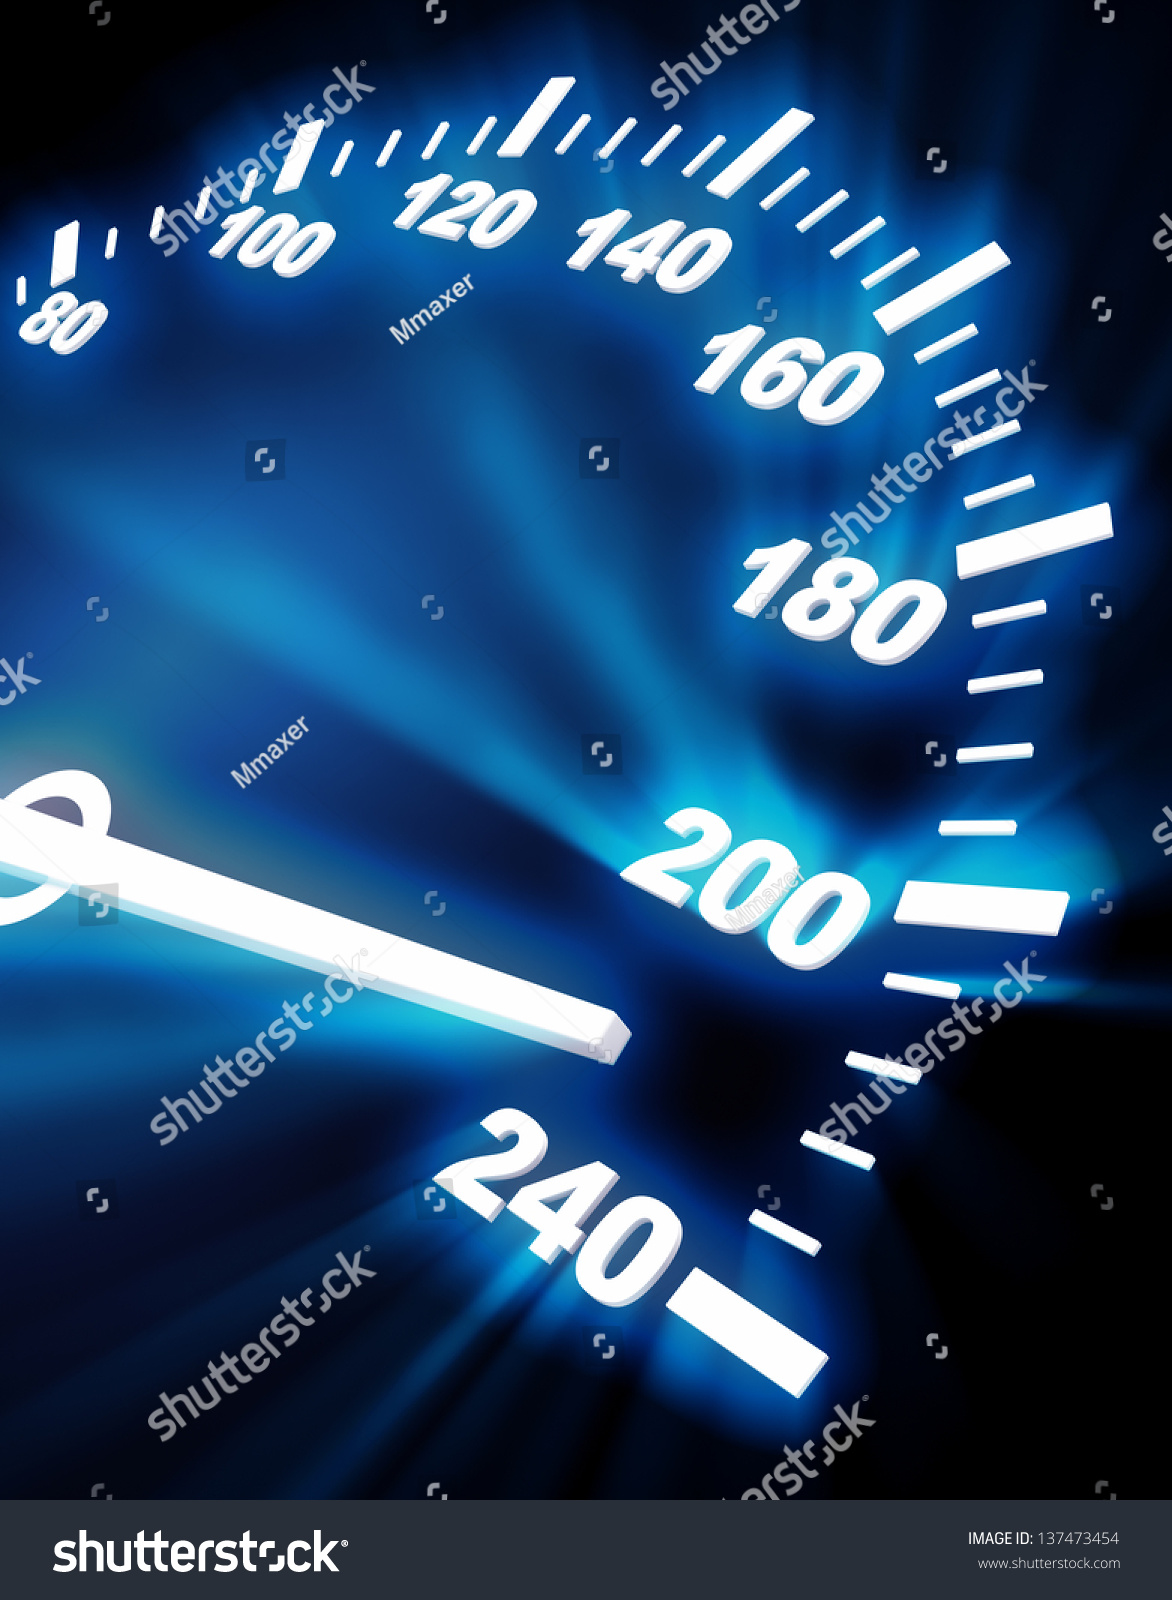 Speedometer Wallpaper